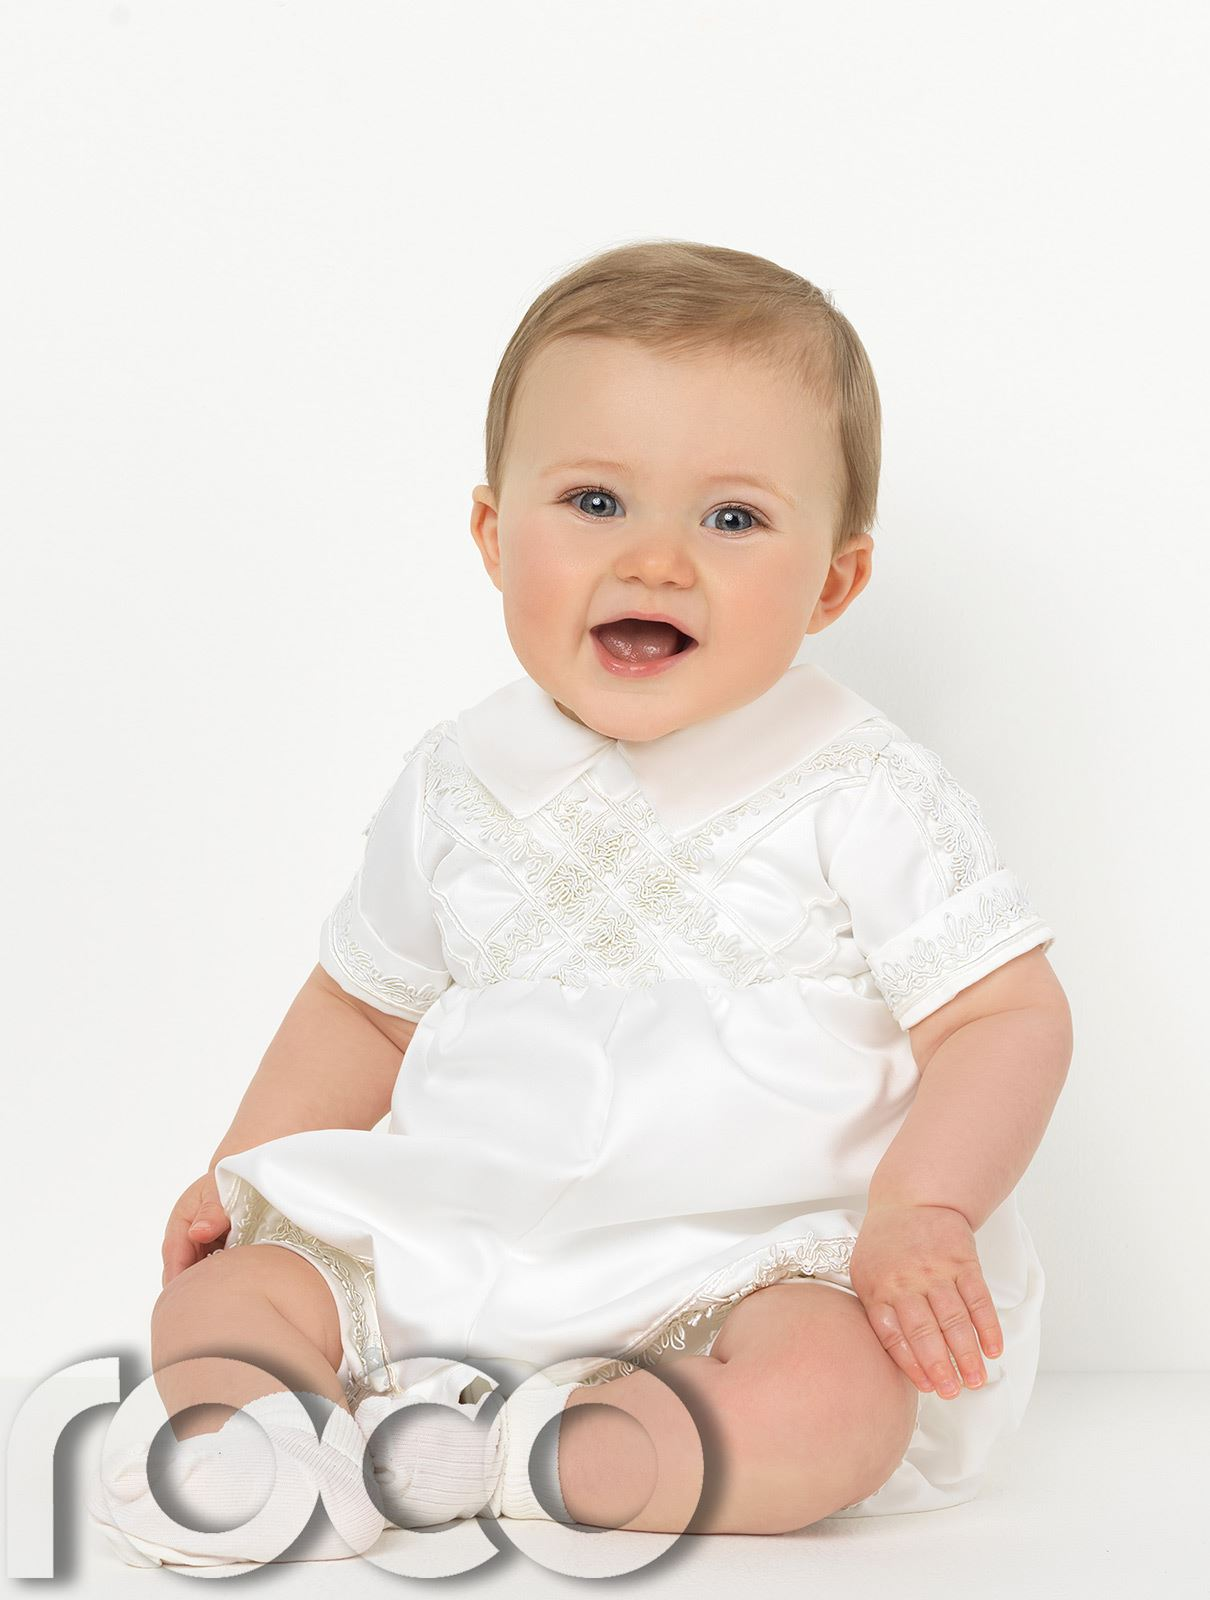 Baby-Boys-Romper-Suits-Boys-Christening-Outfits-Boys-Christening-Suits thumbnail 4